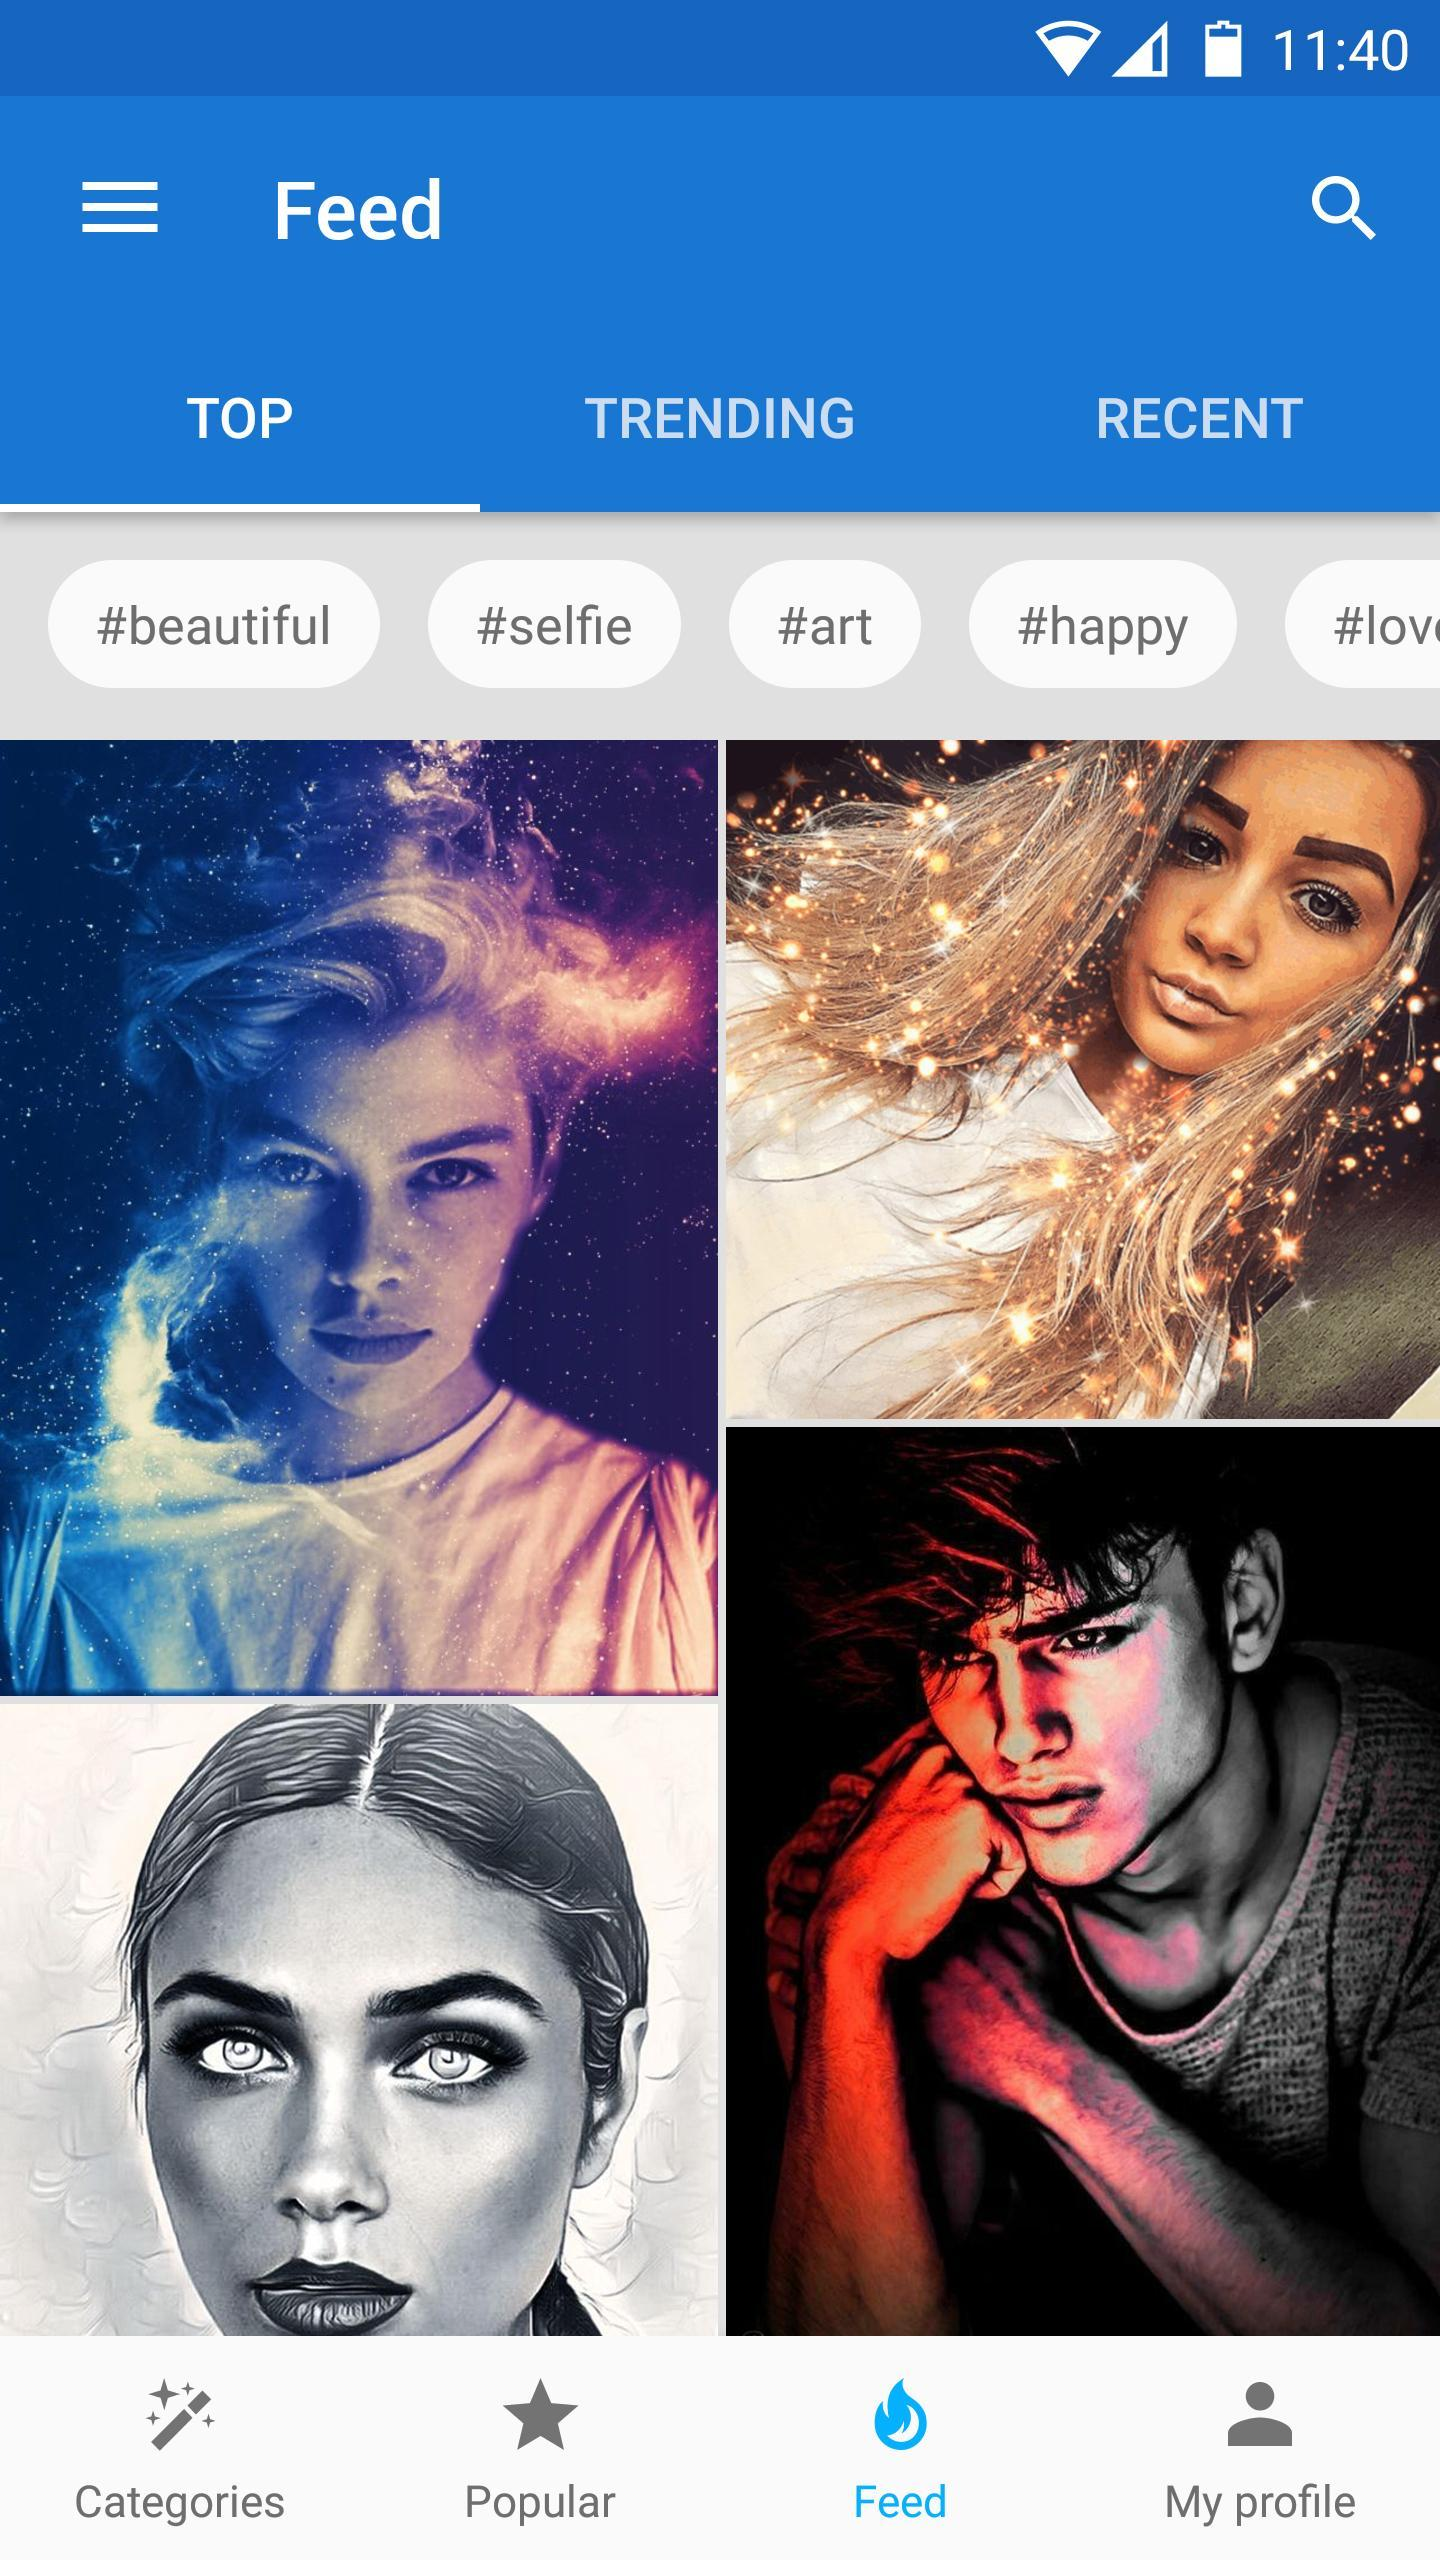 photo lab pro apk free download for iphone